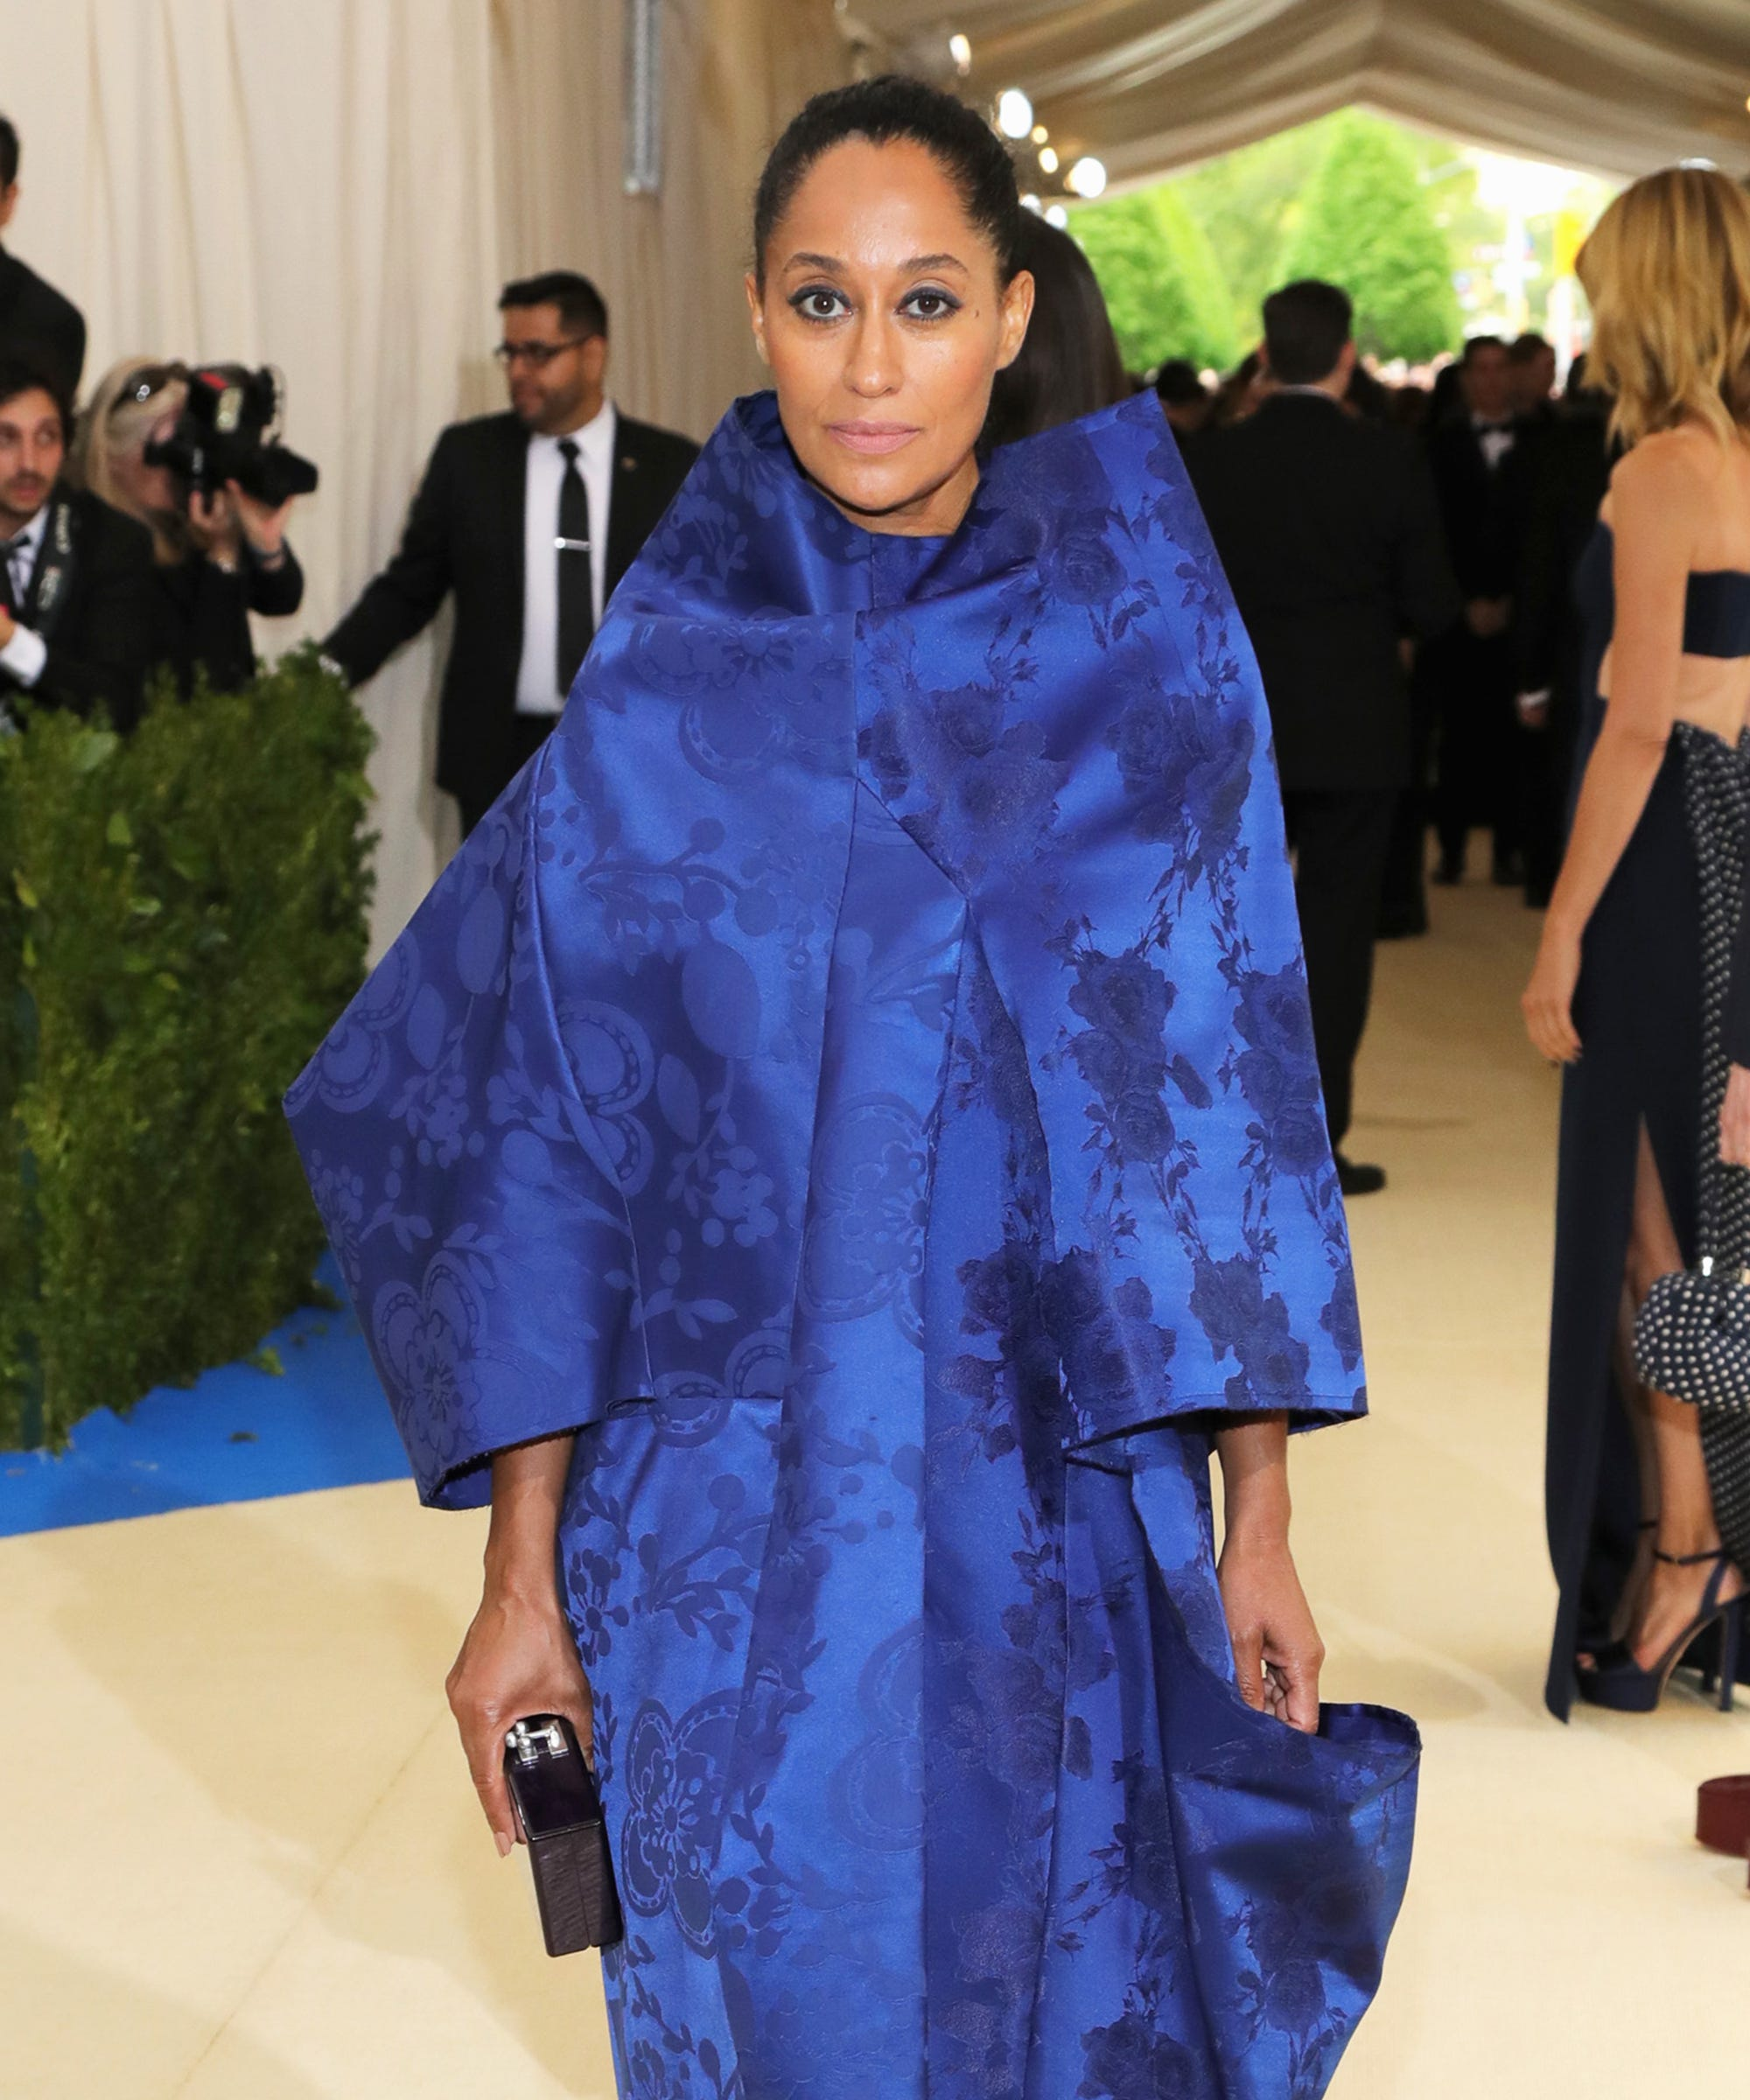 ad6bf7862c9 Met Gala Best Dressed 2017 Red Carpet Outfit Photos